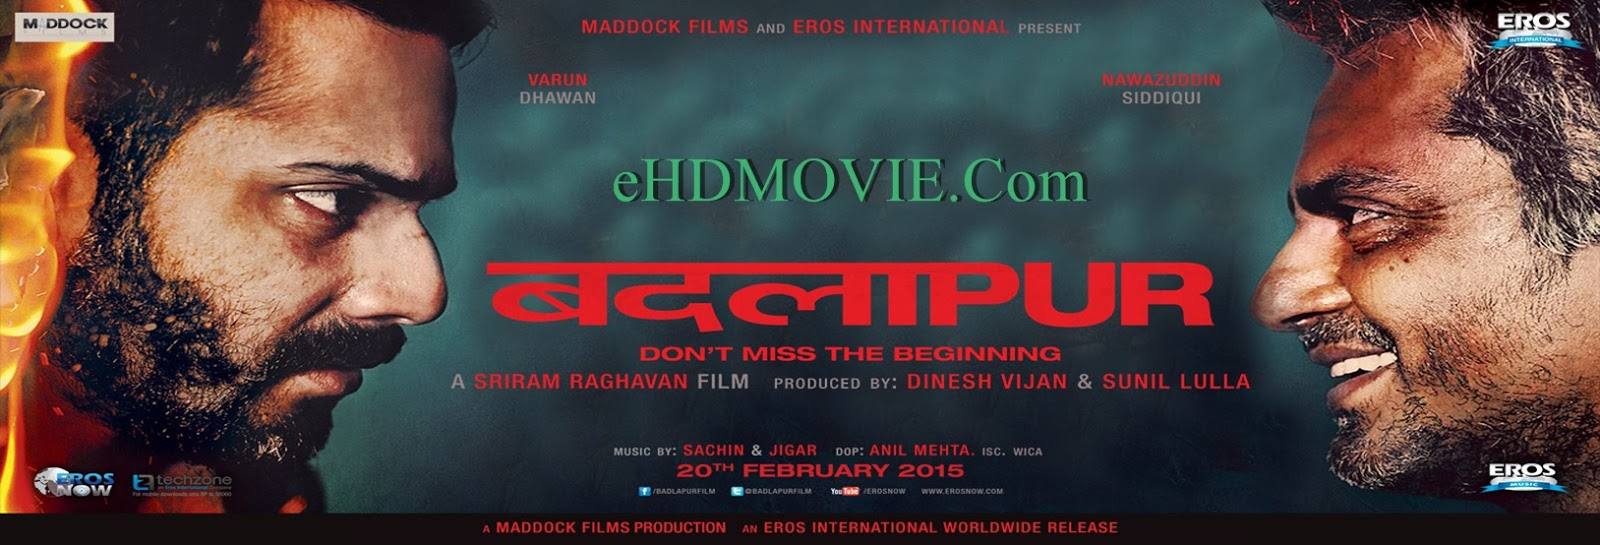 Badlapur Movie Download 720p Podcast